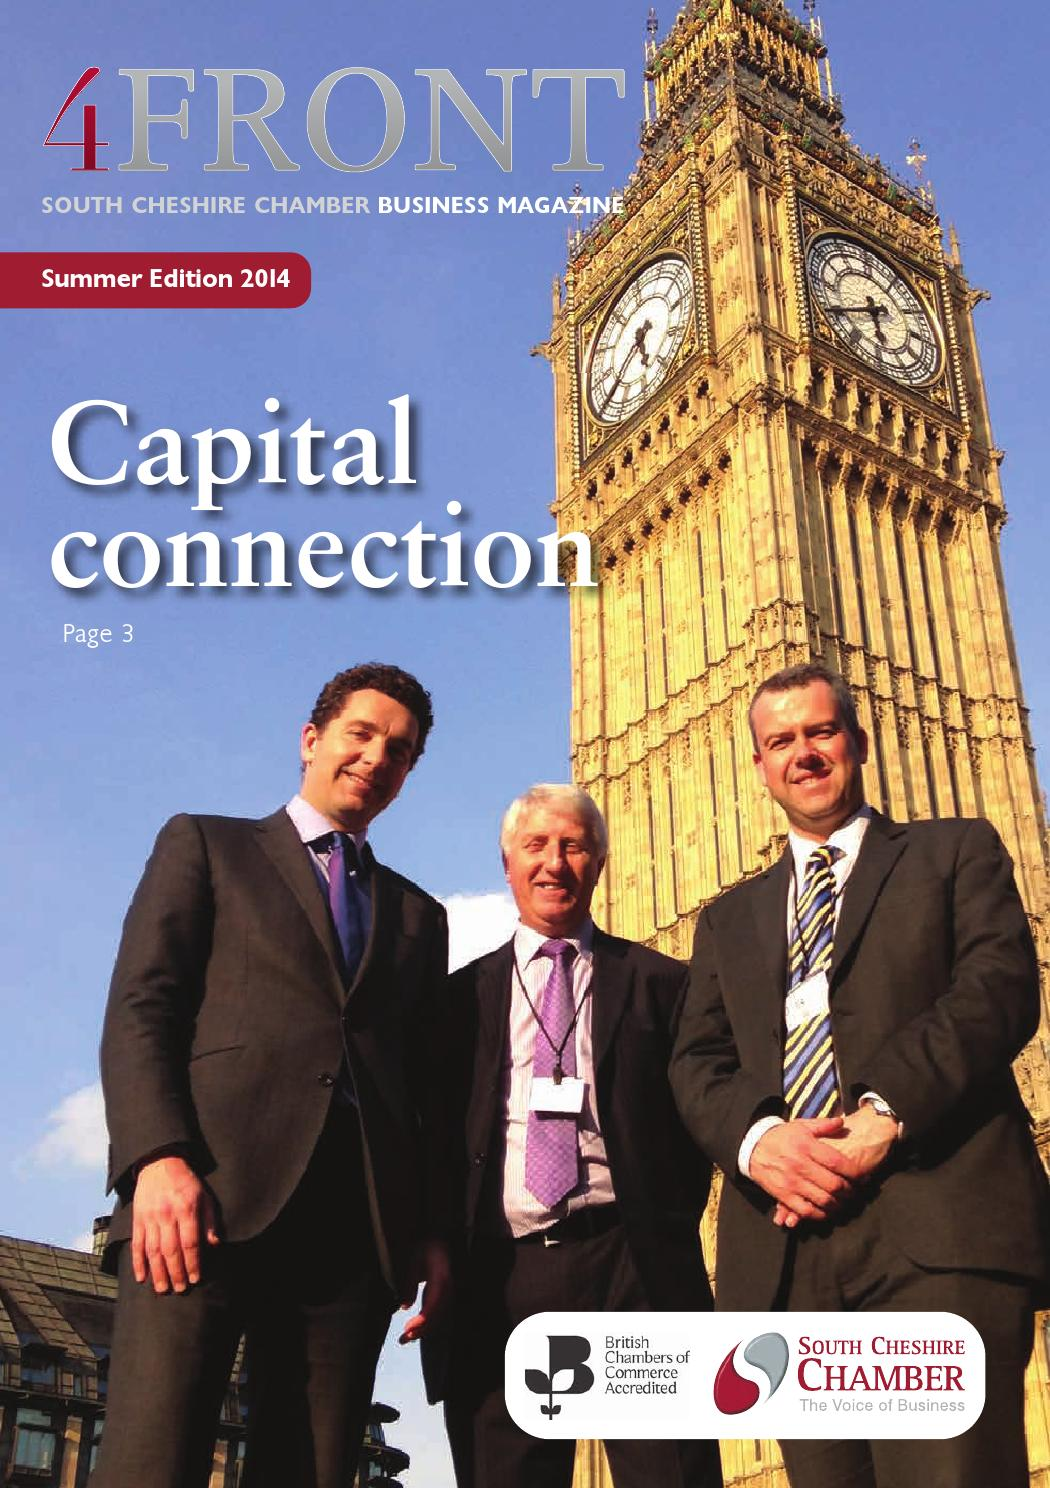 4FRONT Magazine (Summer 2014 Edition) by South Cheshire Chamber - issuu